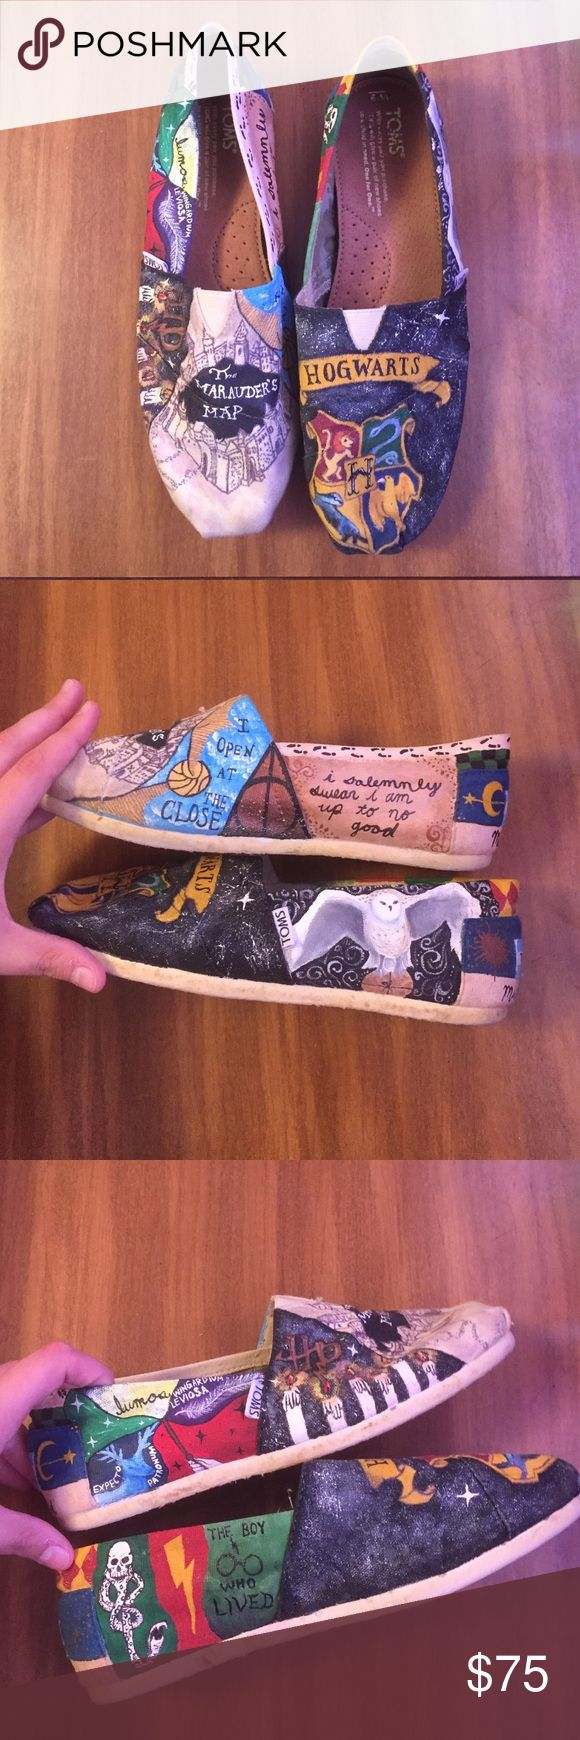 "HP 6/26 Style Obsessions Harry Potter TOMS I DID NOT MAKE THESE. I had them made for me. They are absolutely gorgeous ""natural"" canvas TOMS with hand painted Harry Potter designs. I only wore them once because they were just too beautiful for me to wear. They have been sprayed with clear spray paint to seal them but could be sprayed again. Light wear on soles and back of heels. Nothing major. I put a lot of money into these beauties and I hate to let them go but they need a home where…"